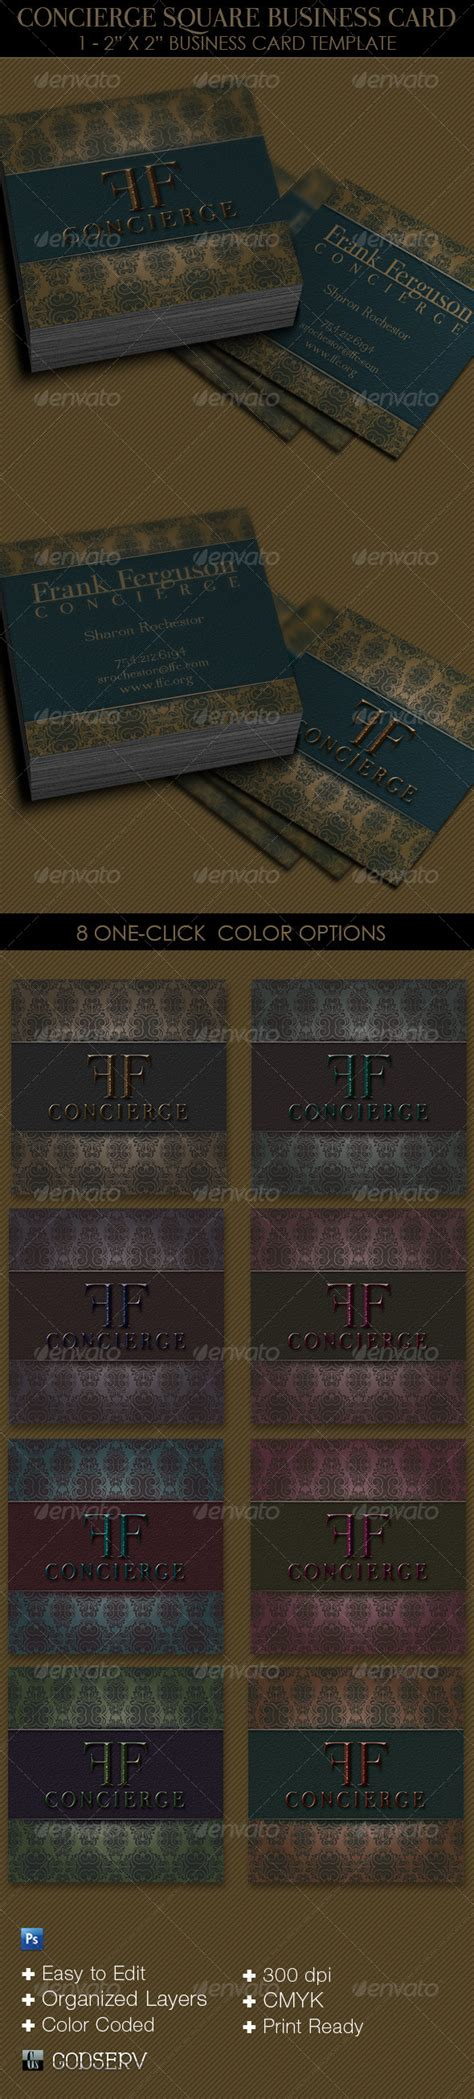 concierge business cards template concierge square business card template graphicriver